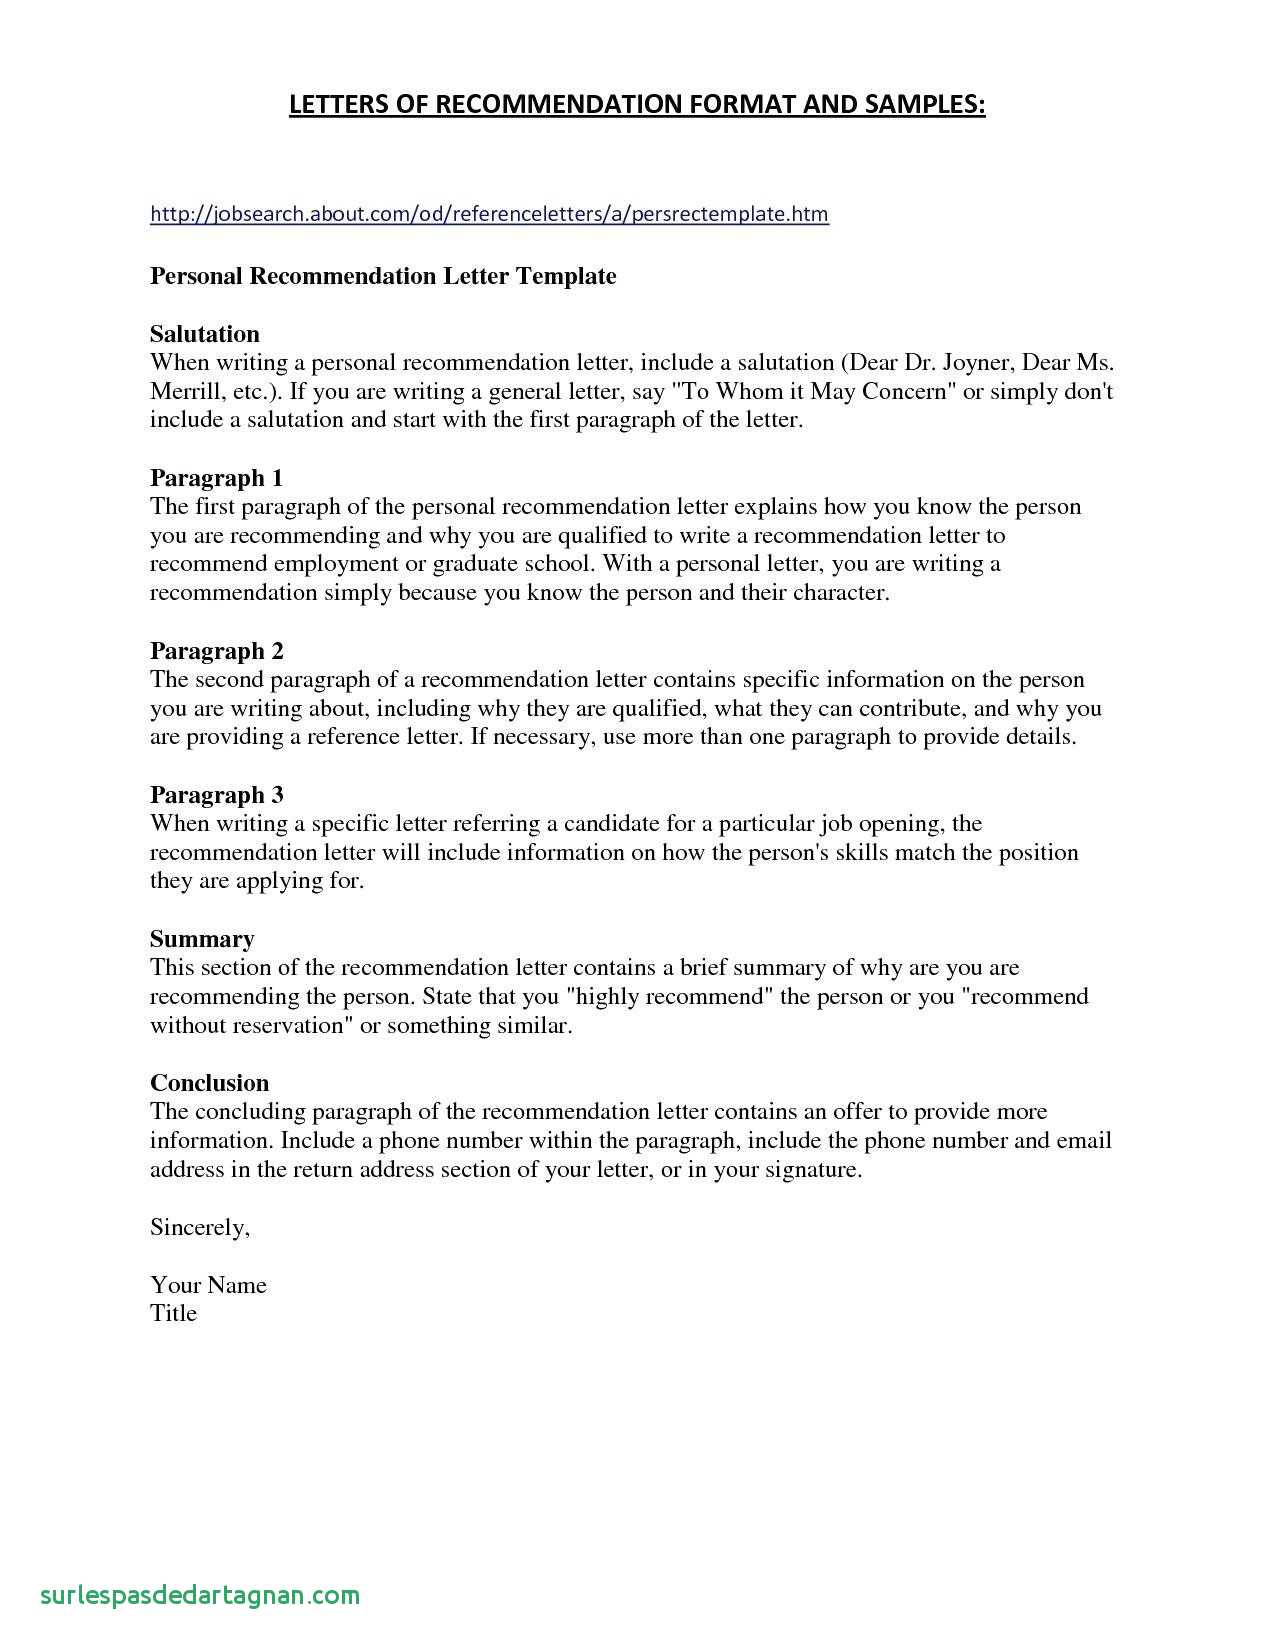 Professional Reference Letter Template Free - French Sample Letters to A Friend New Professional Reference Letter